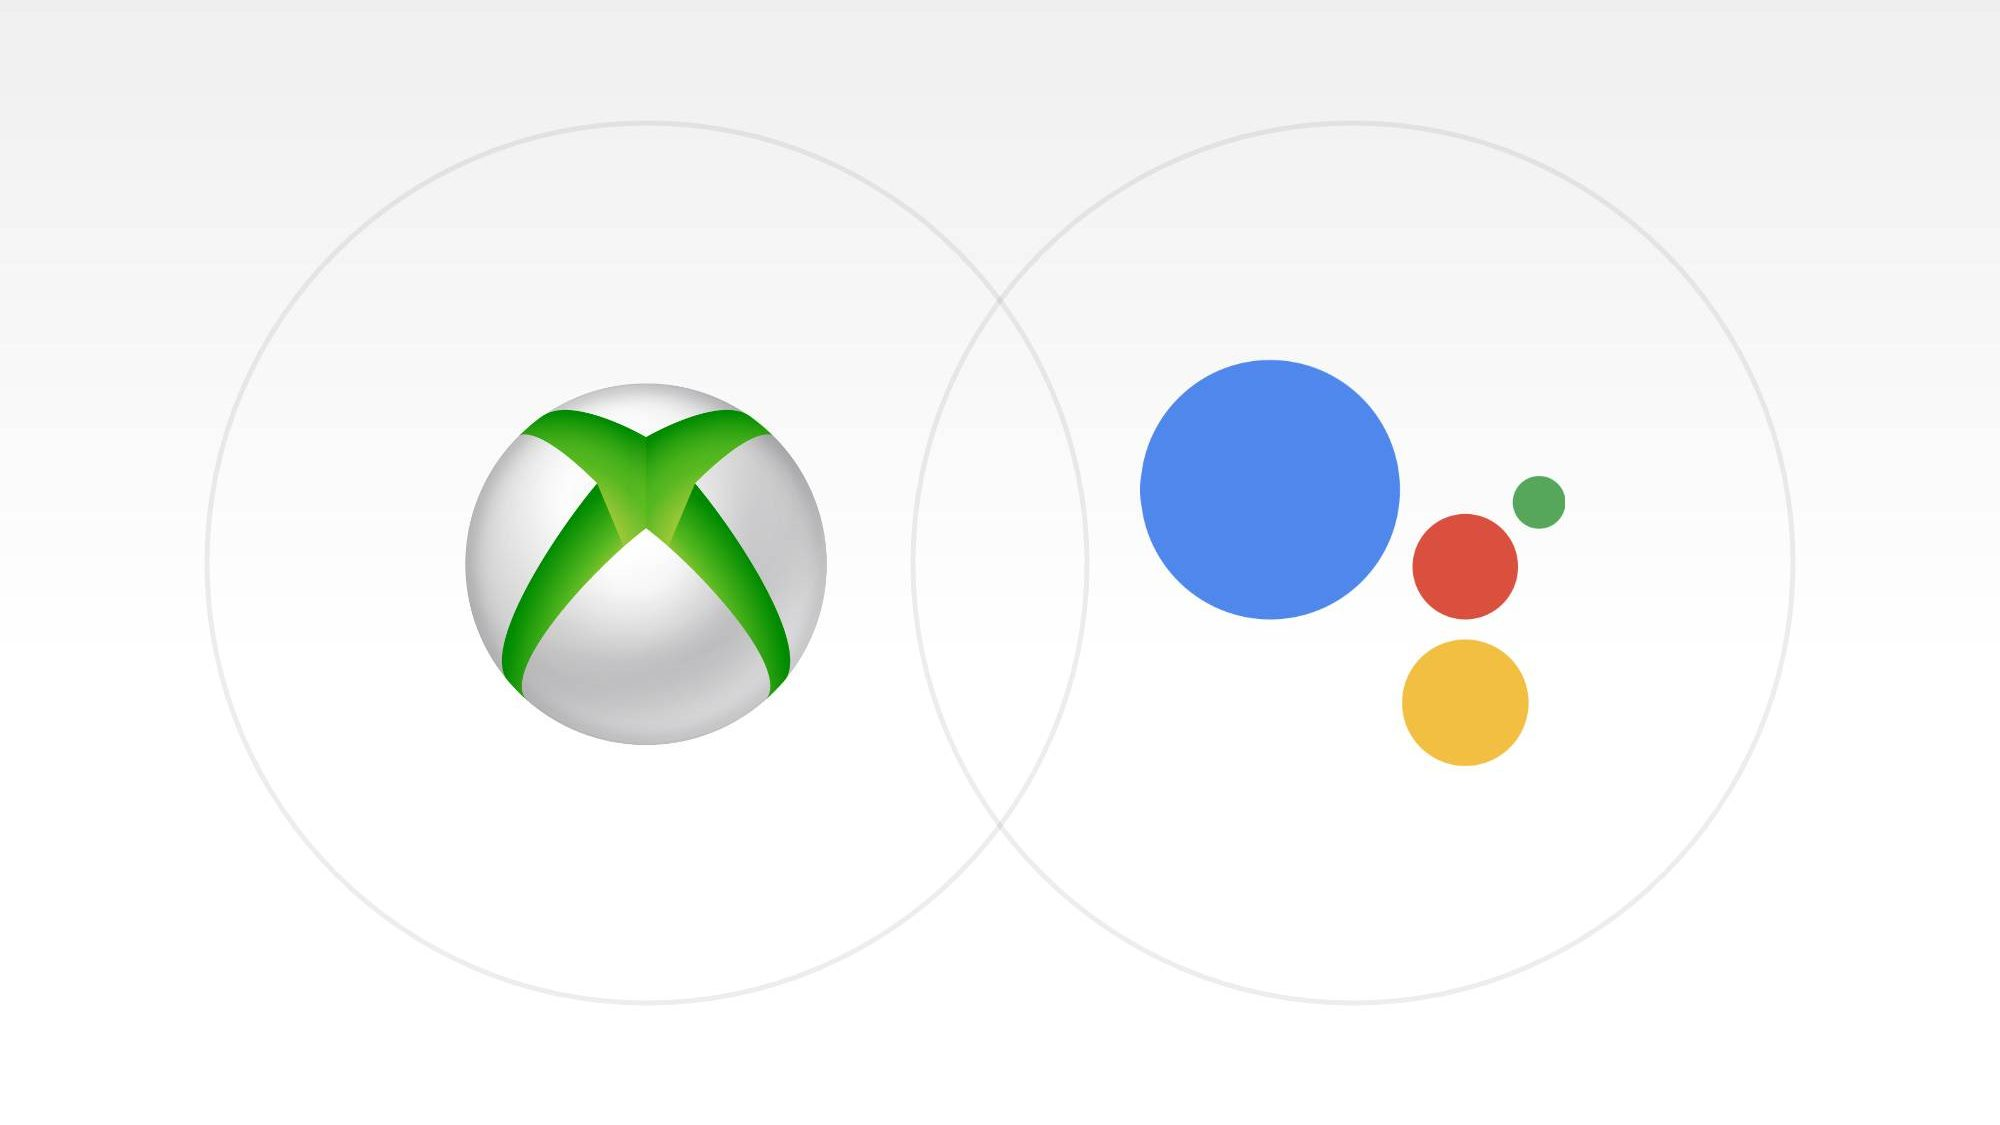 You can now use the Google Assistant to control your Xbox One